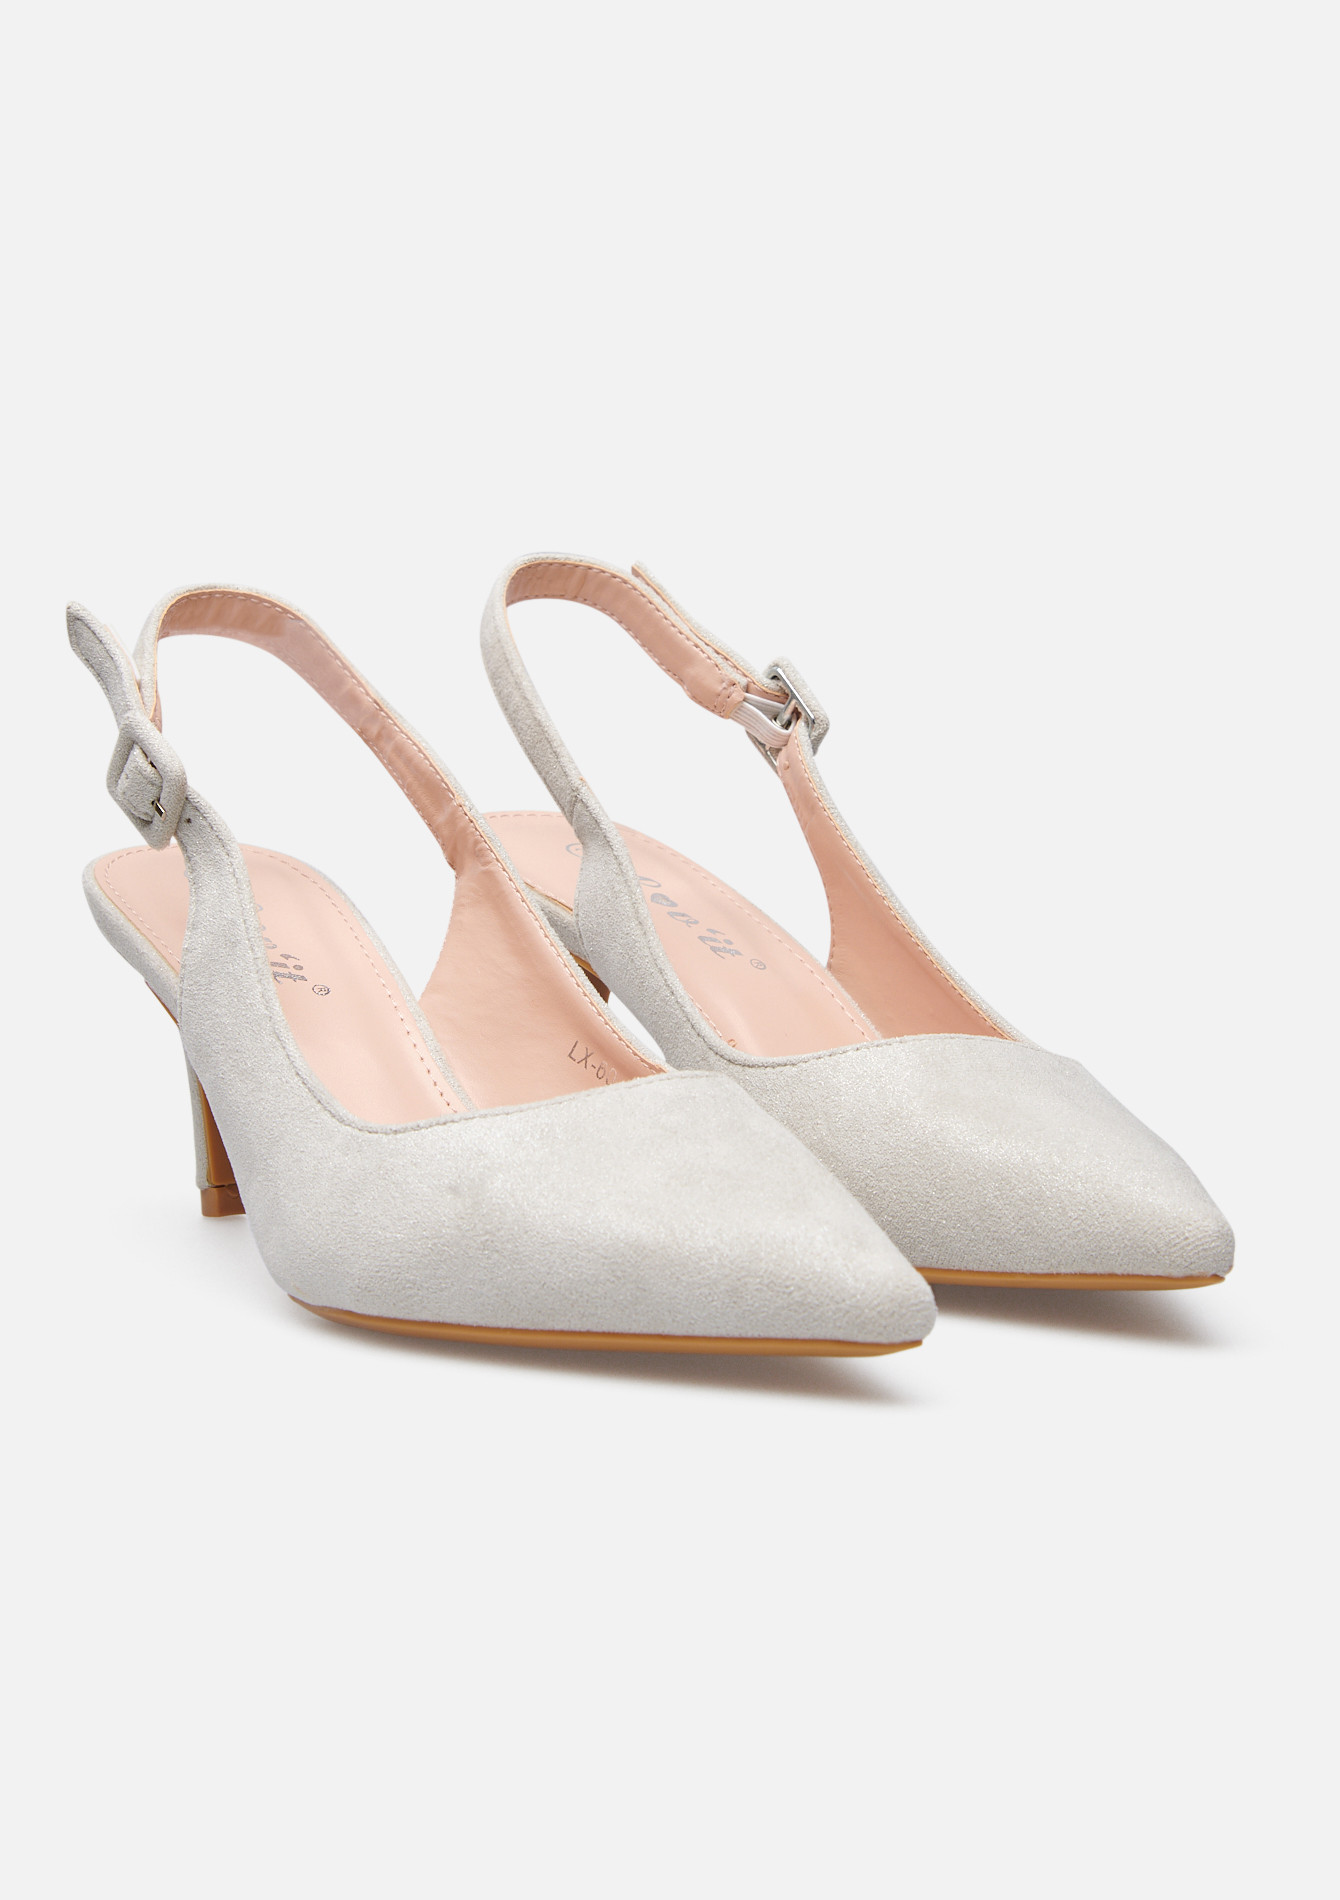 Hakken imitatie-suede - LIGHT GREY - 13200004_1076